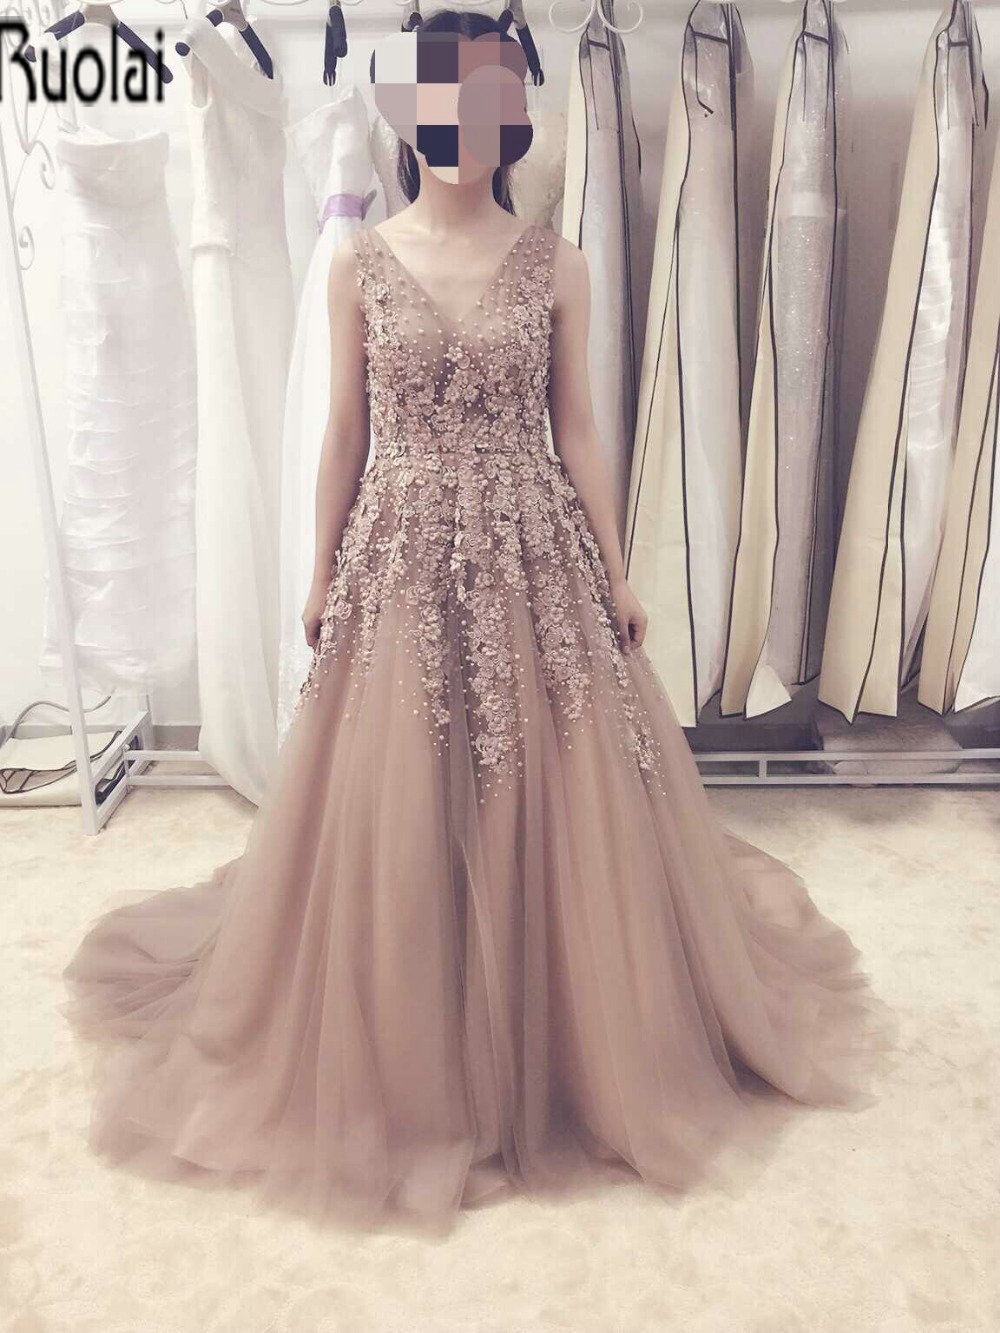 New Arrival Charming 2016 Spring Real Sample Bling Flowers Applique Beading Pearls Champagne V Neck Sexy Long Evening Dresses